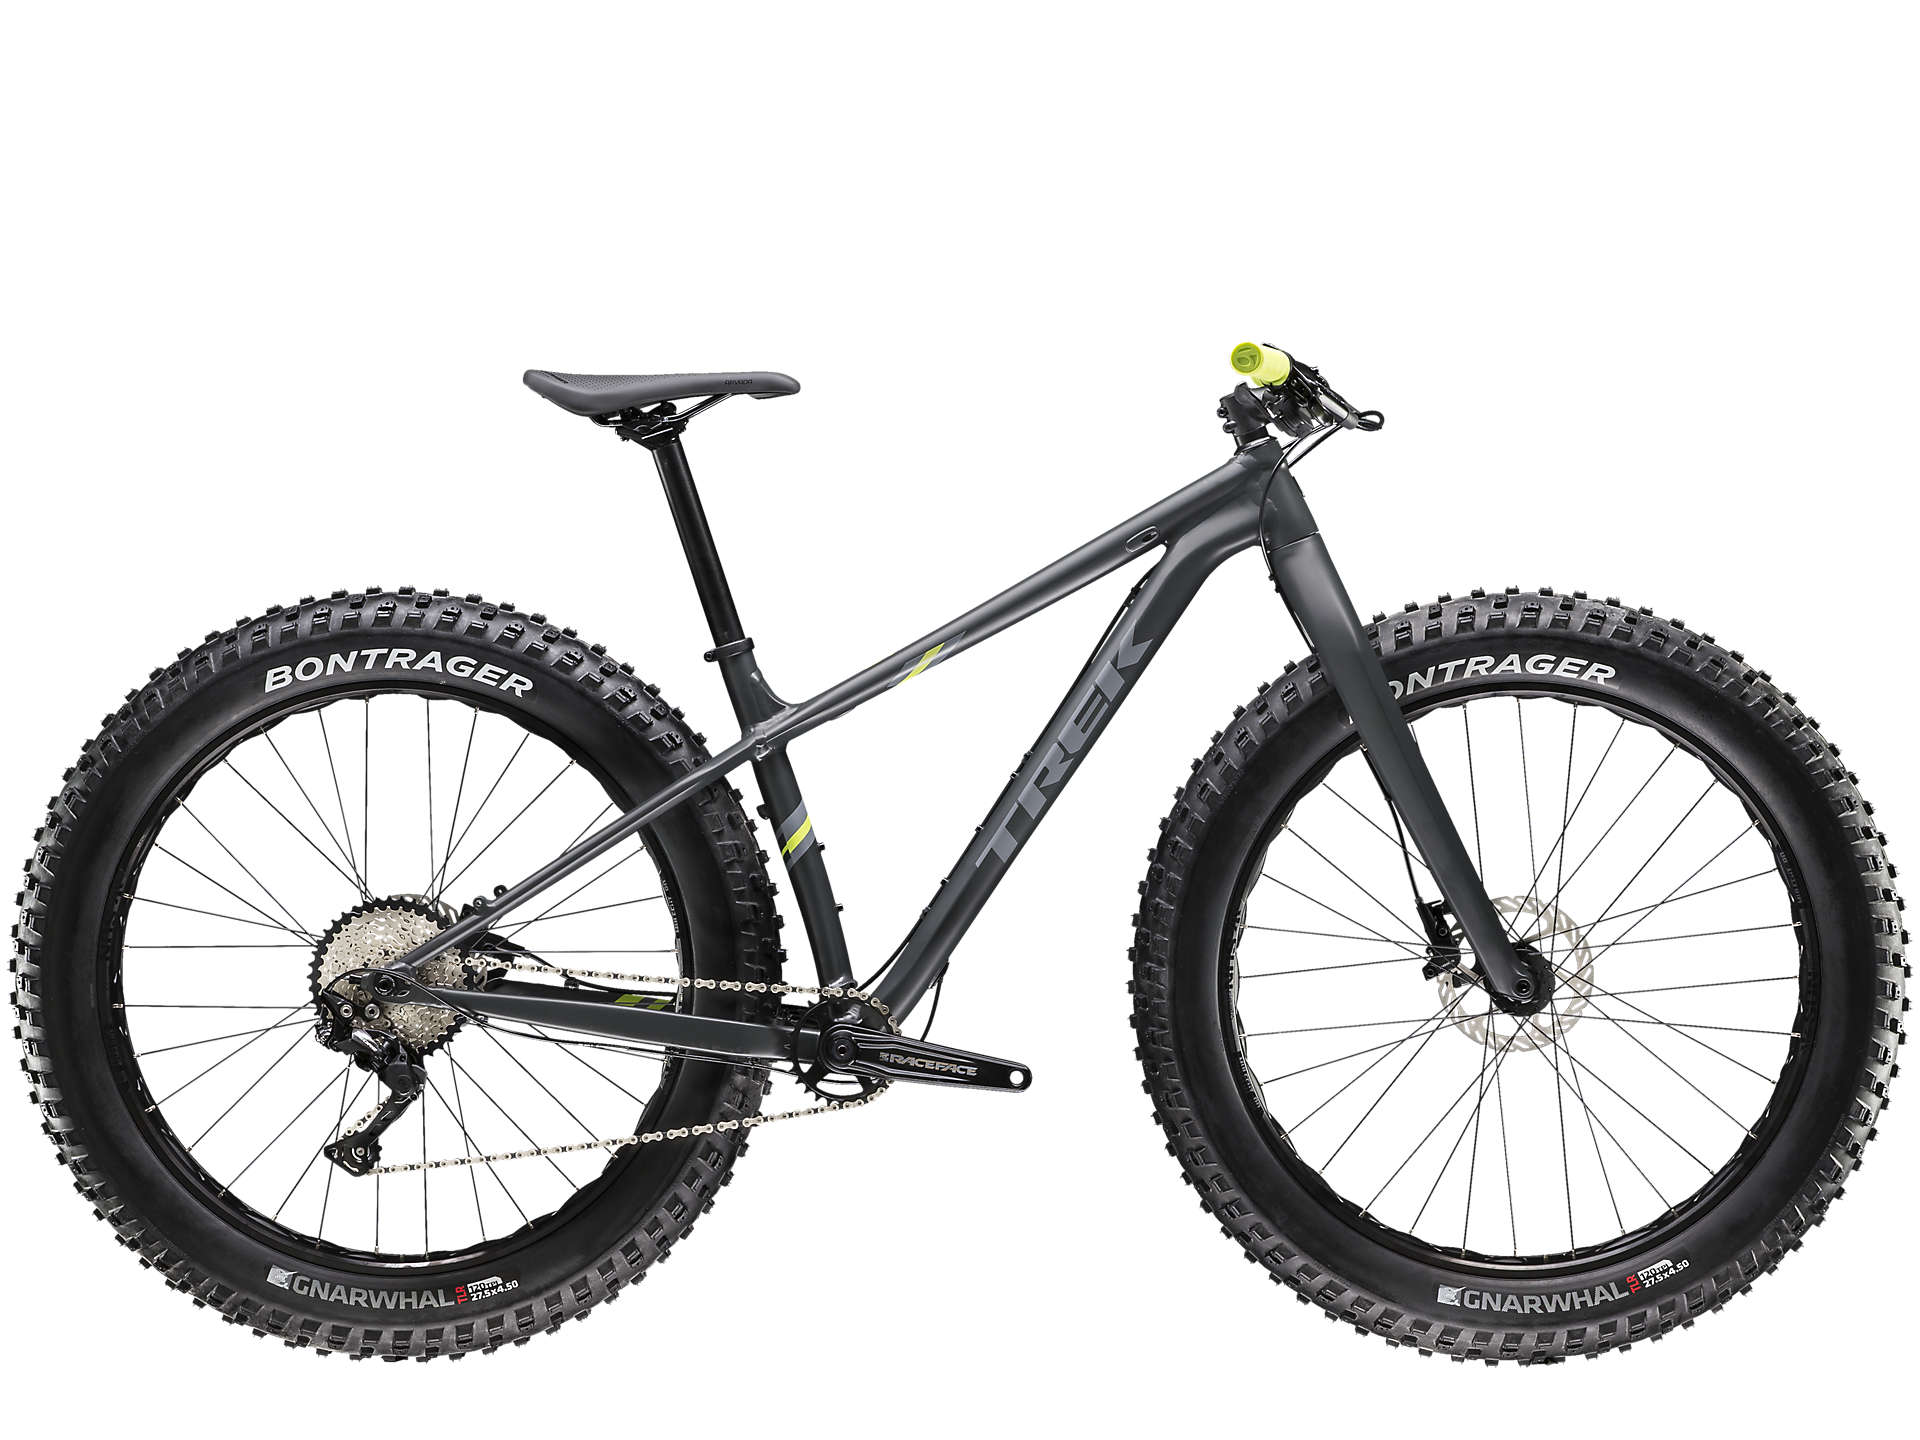 Trek Farley 5 2019 Fat Mountain Bike Matte Black £1,450.00